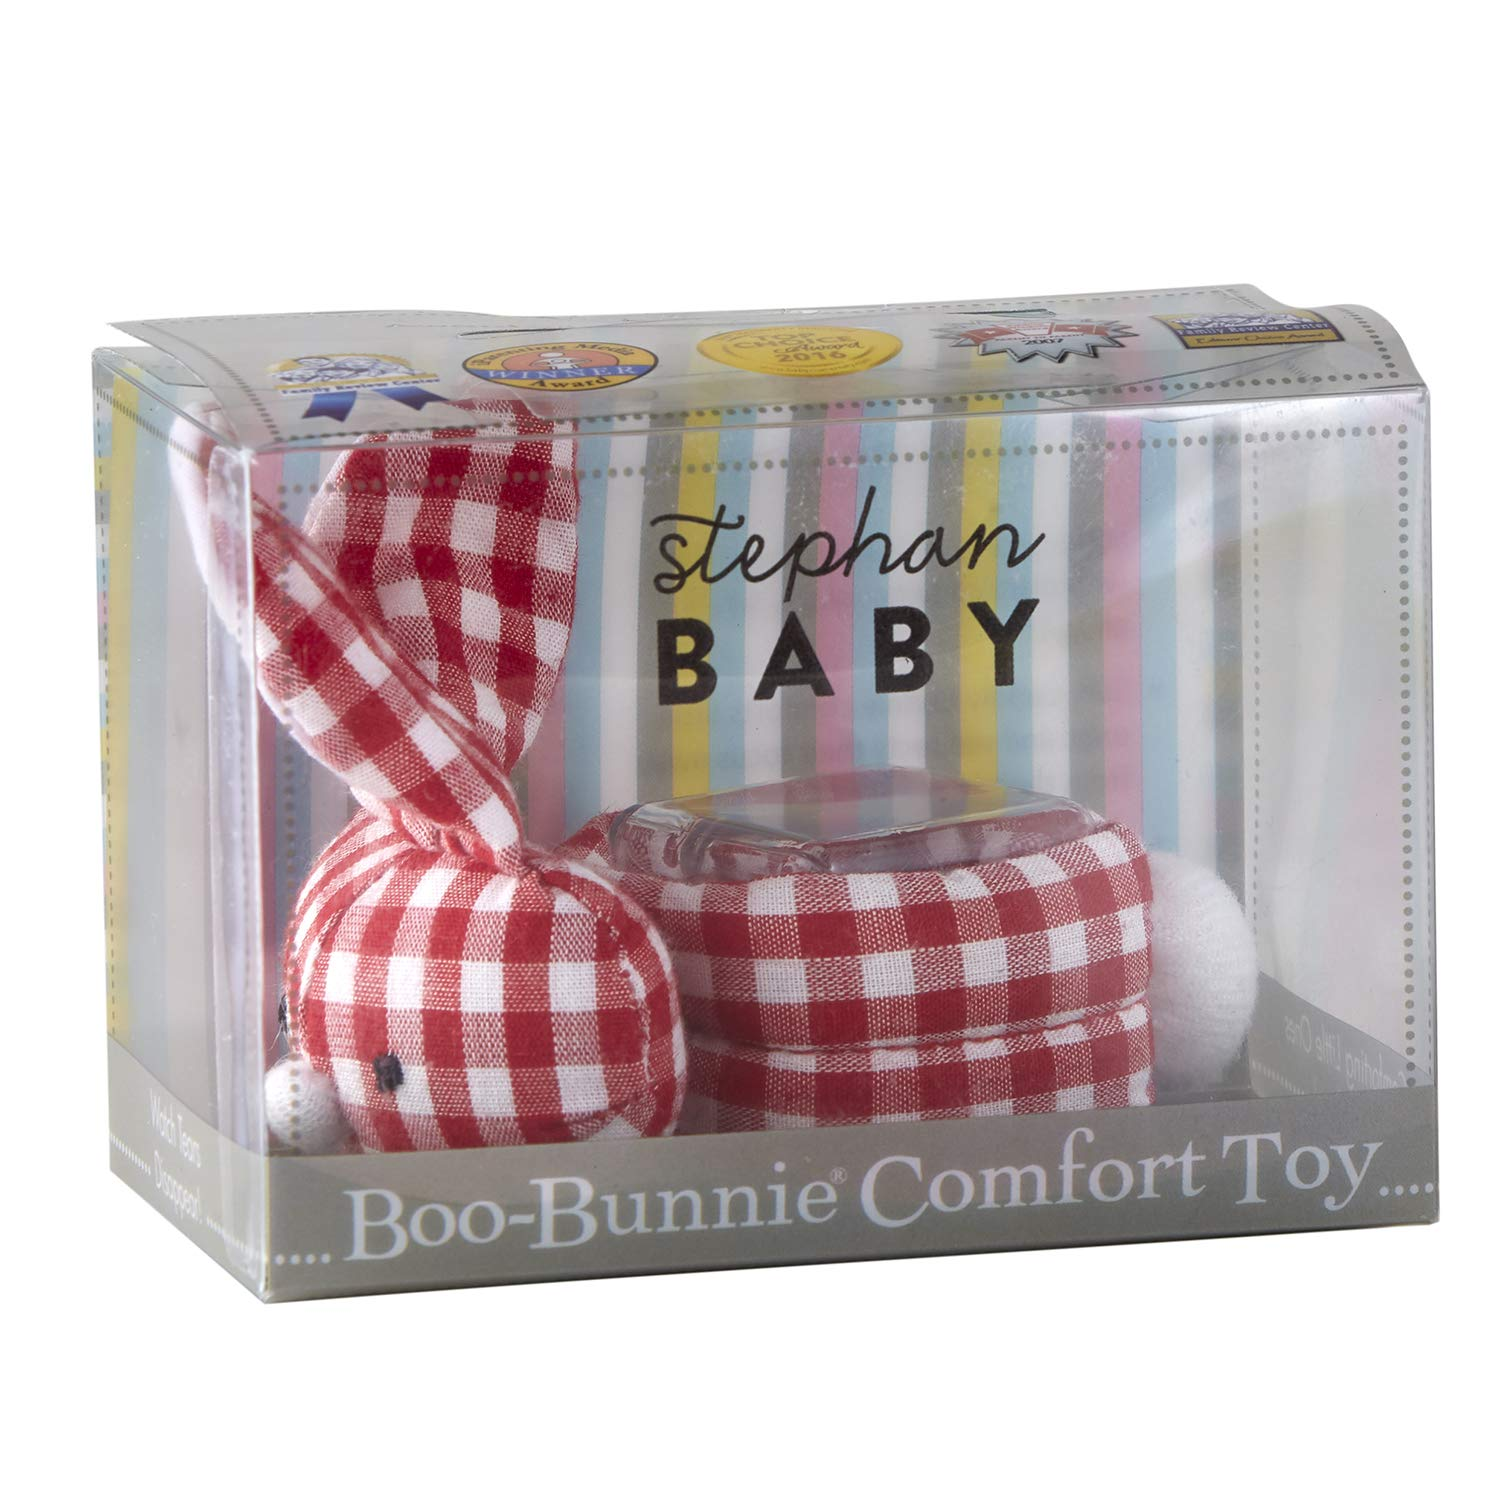 Amazon.com: Stephan Baby Boo-Bunnie Comfort Toy & Boo Cube ...